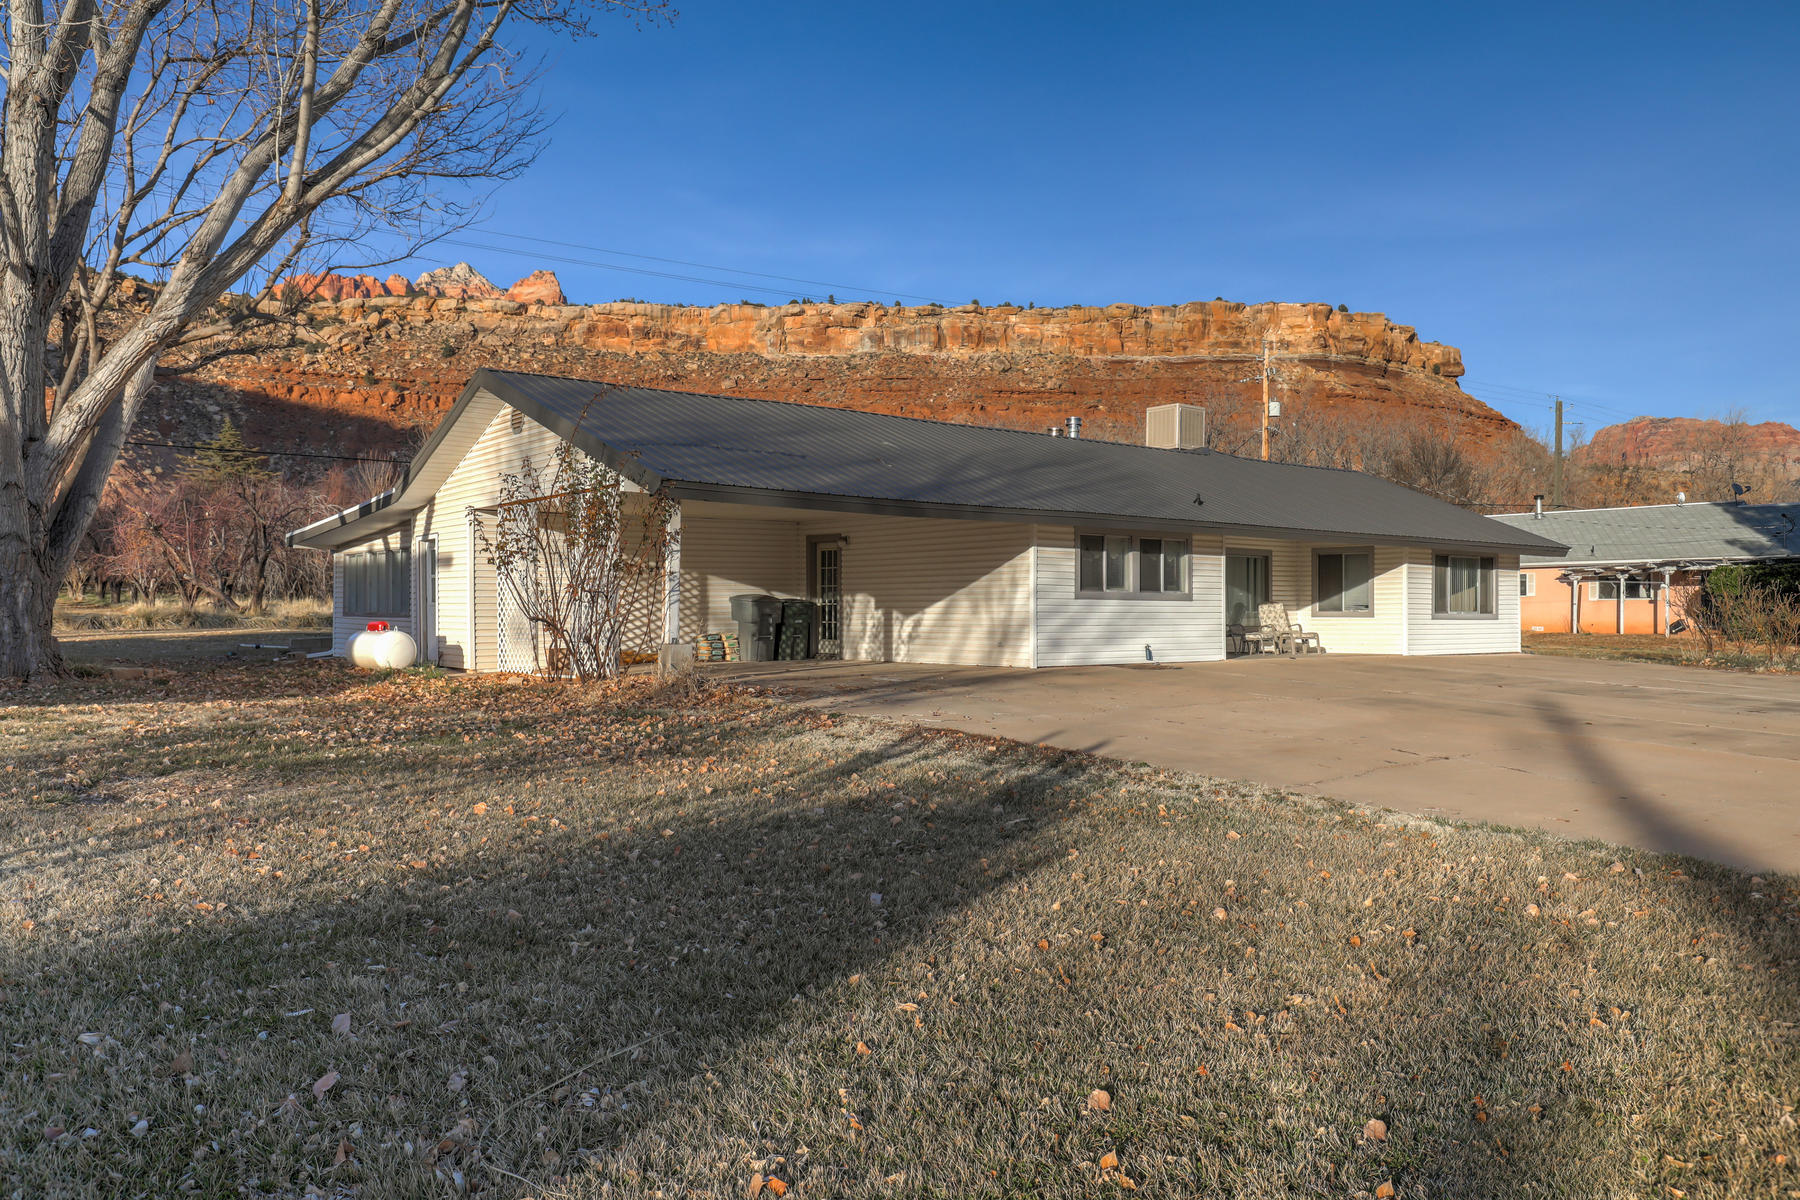 Single Family Homes for Sale at Close To Zion National Park 180 West Main St Rockville, Utah 84763 United States